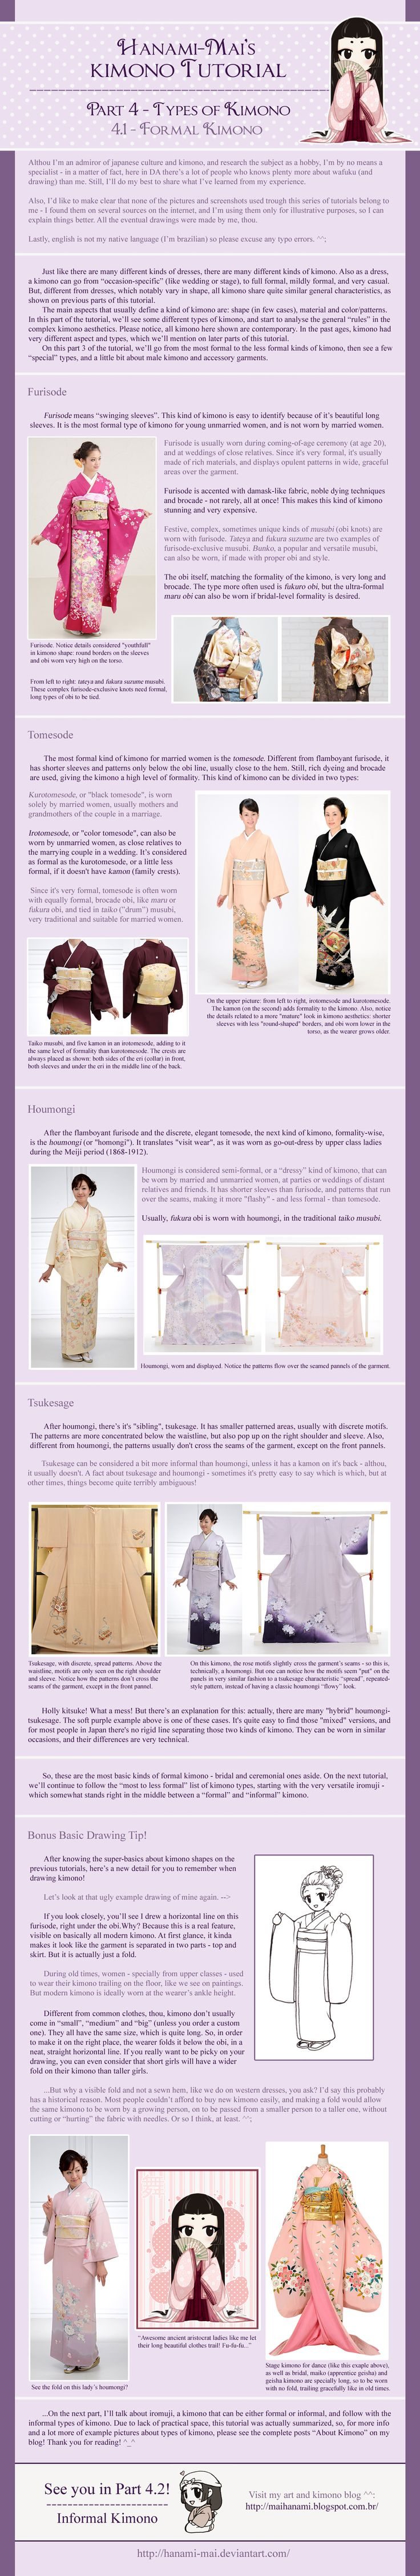 Kimono Tutorial - Part 04 by Hanami-Mai on deviantART